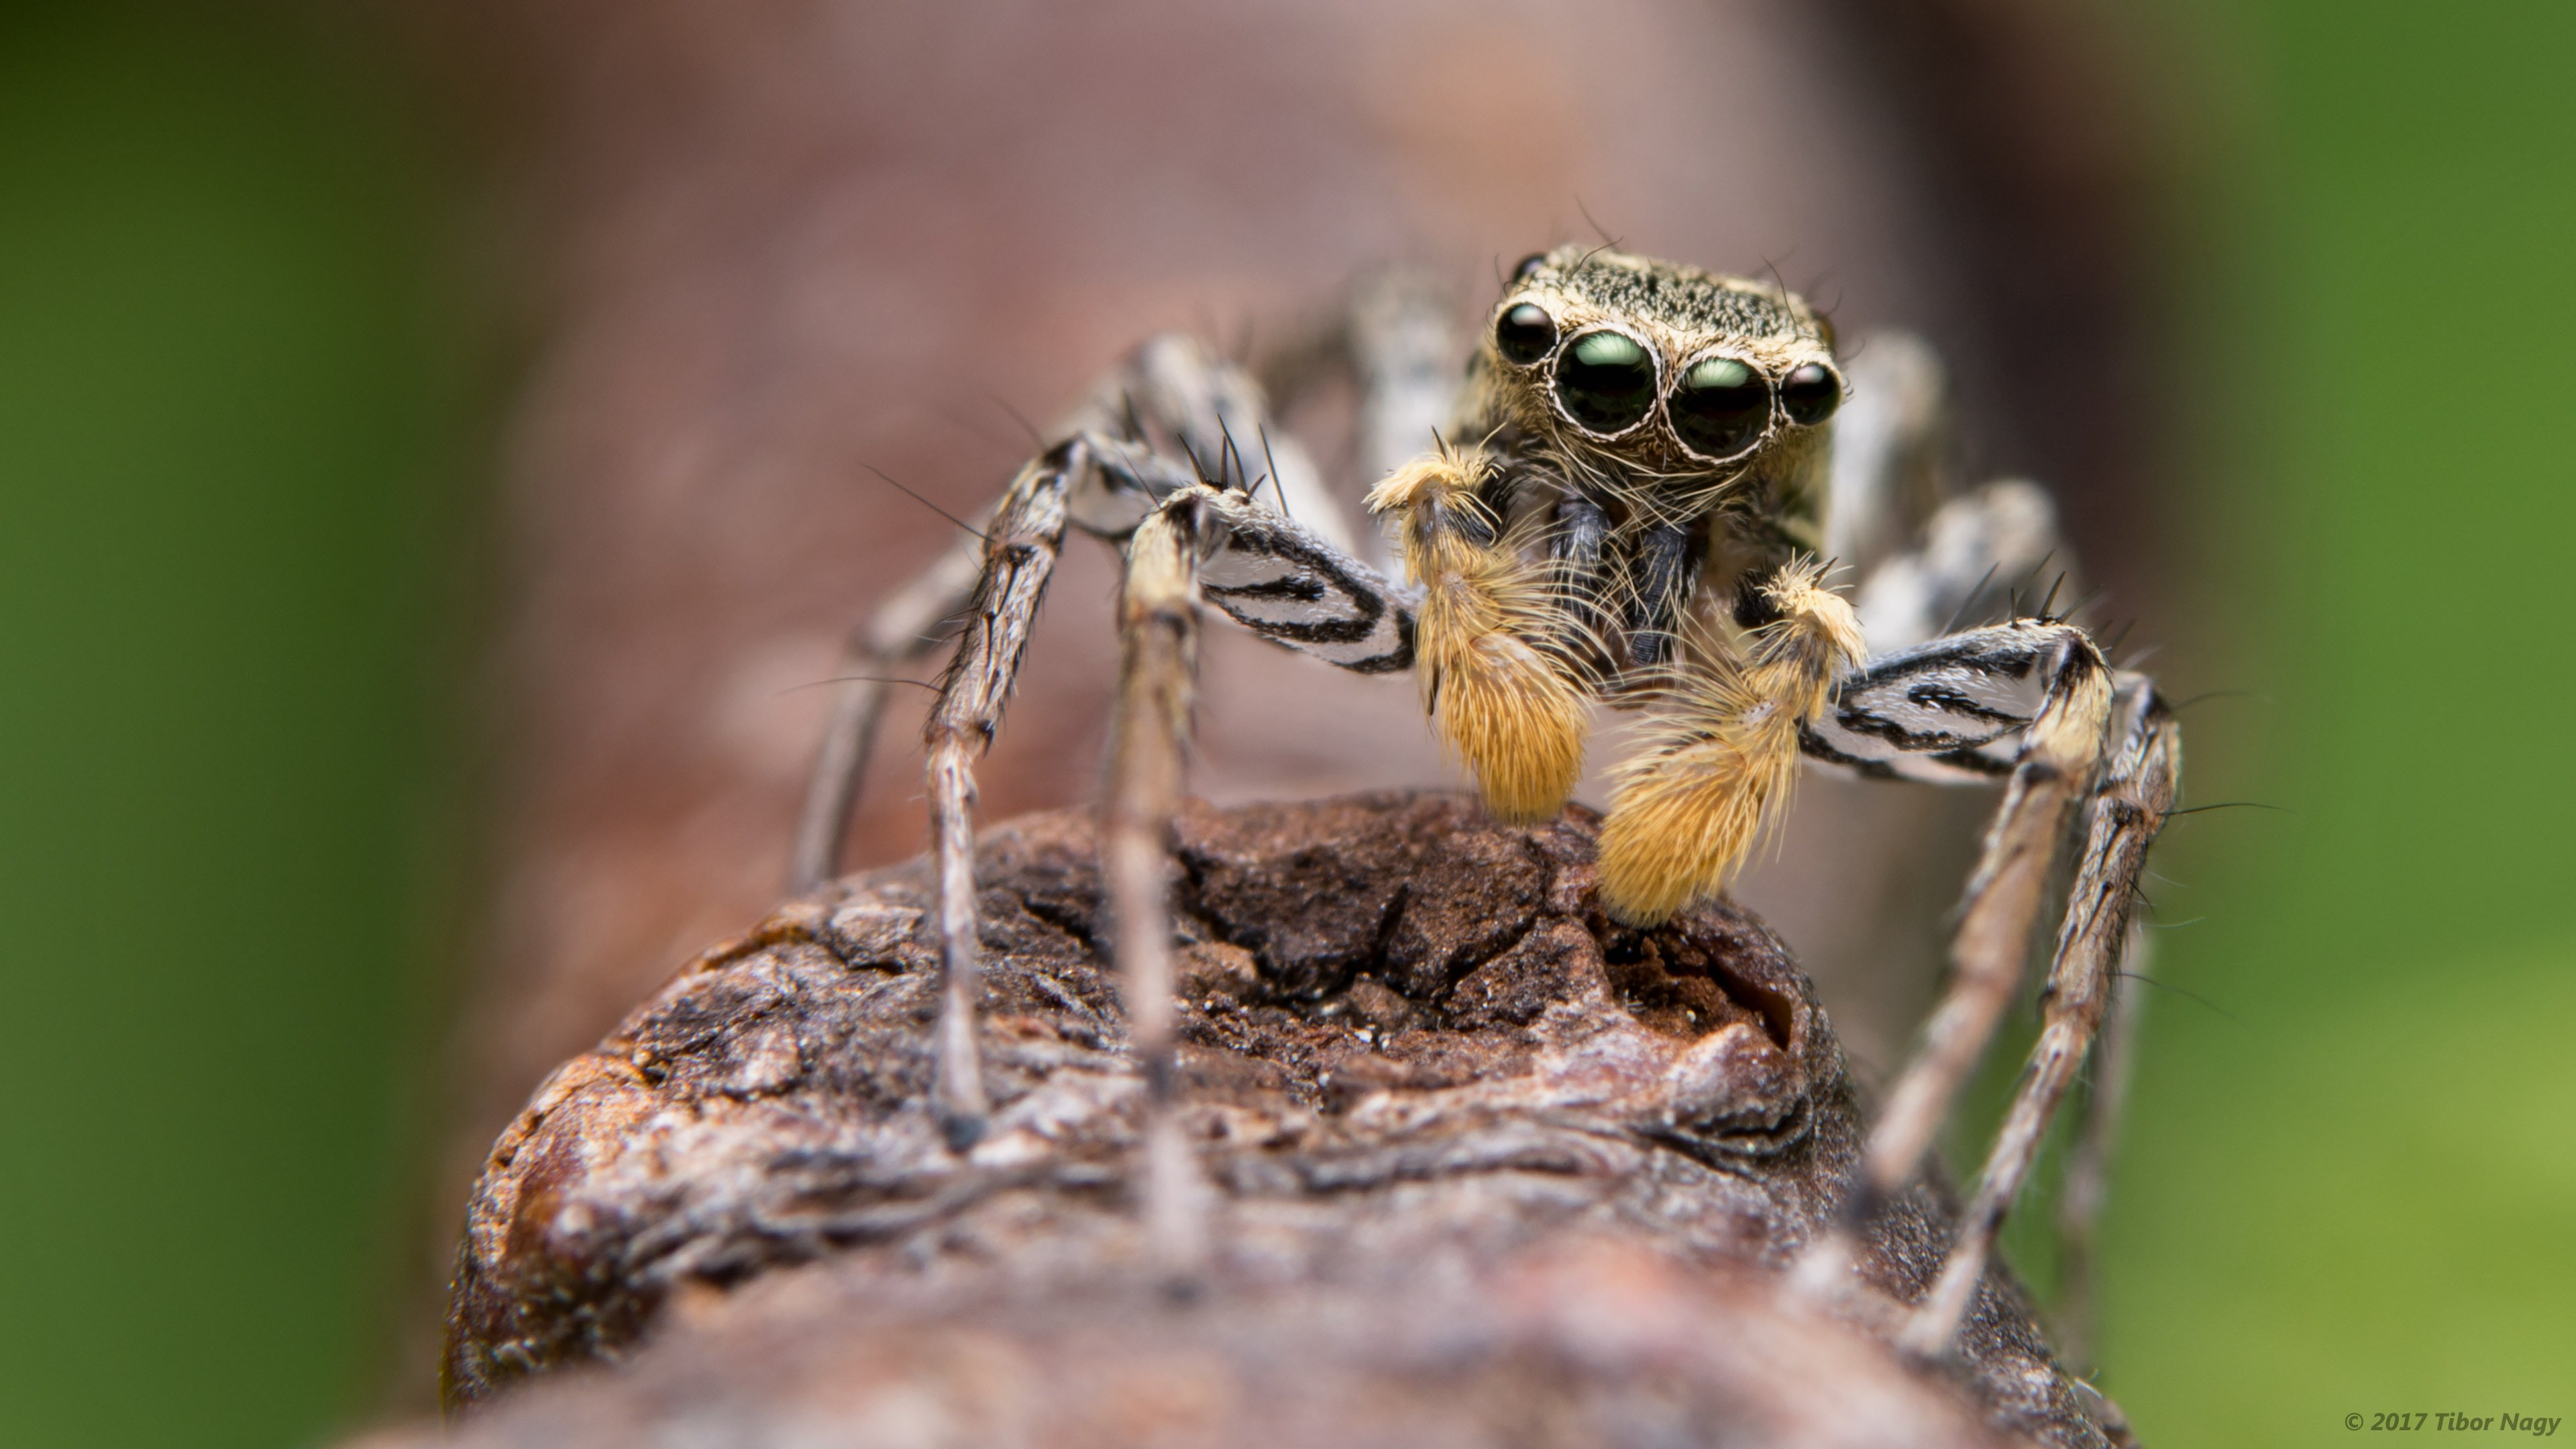 spider wallpapers, photos and desktop backgrounds up to 8k